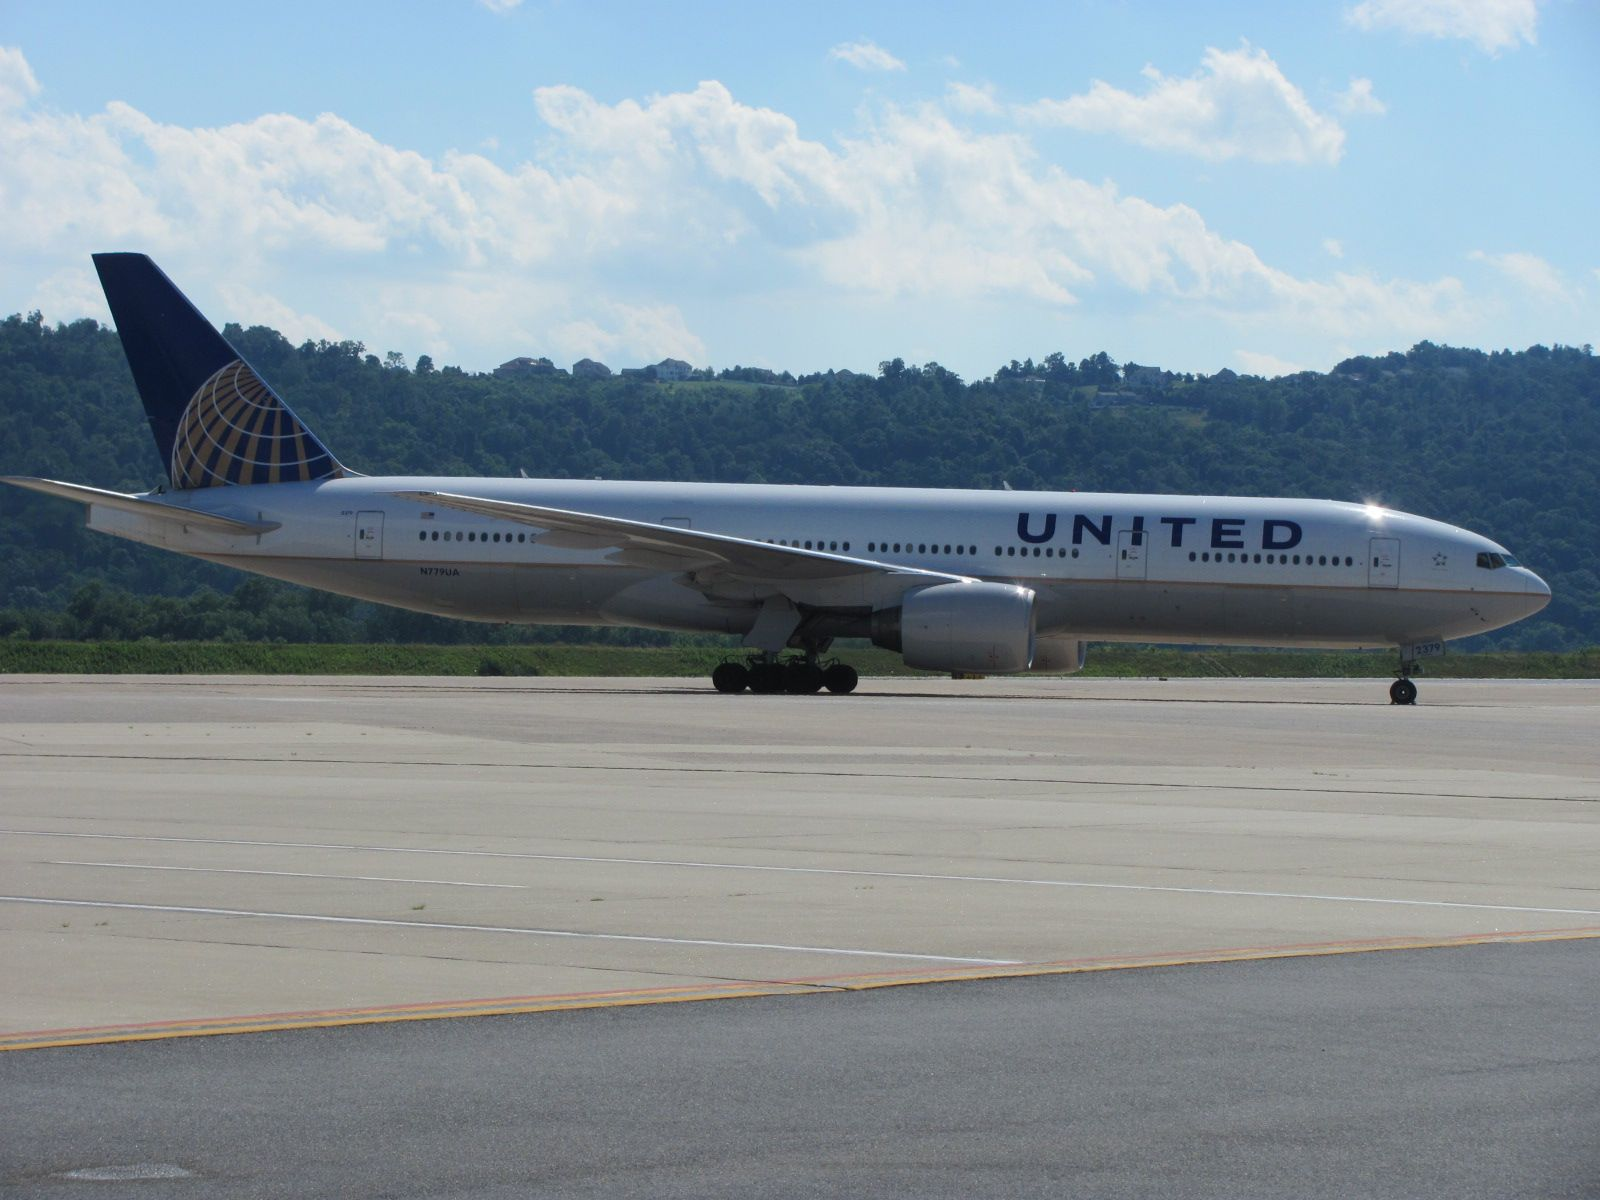 This 777 was diverted to MDT from another nearby airport due to poor weather in 2011.